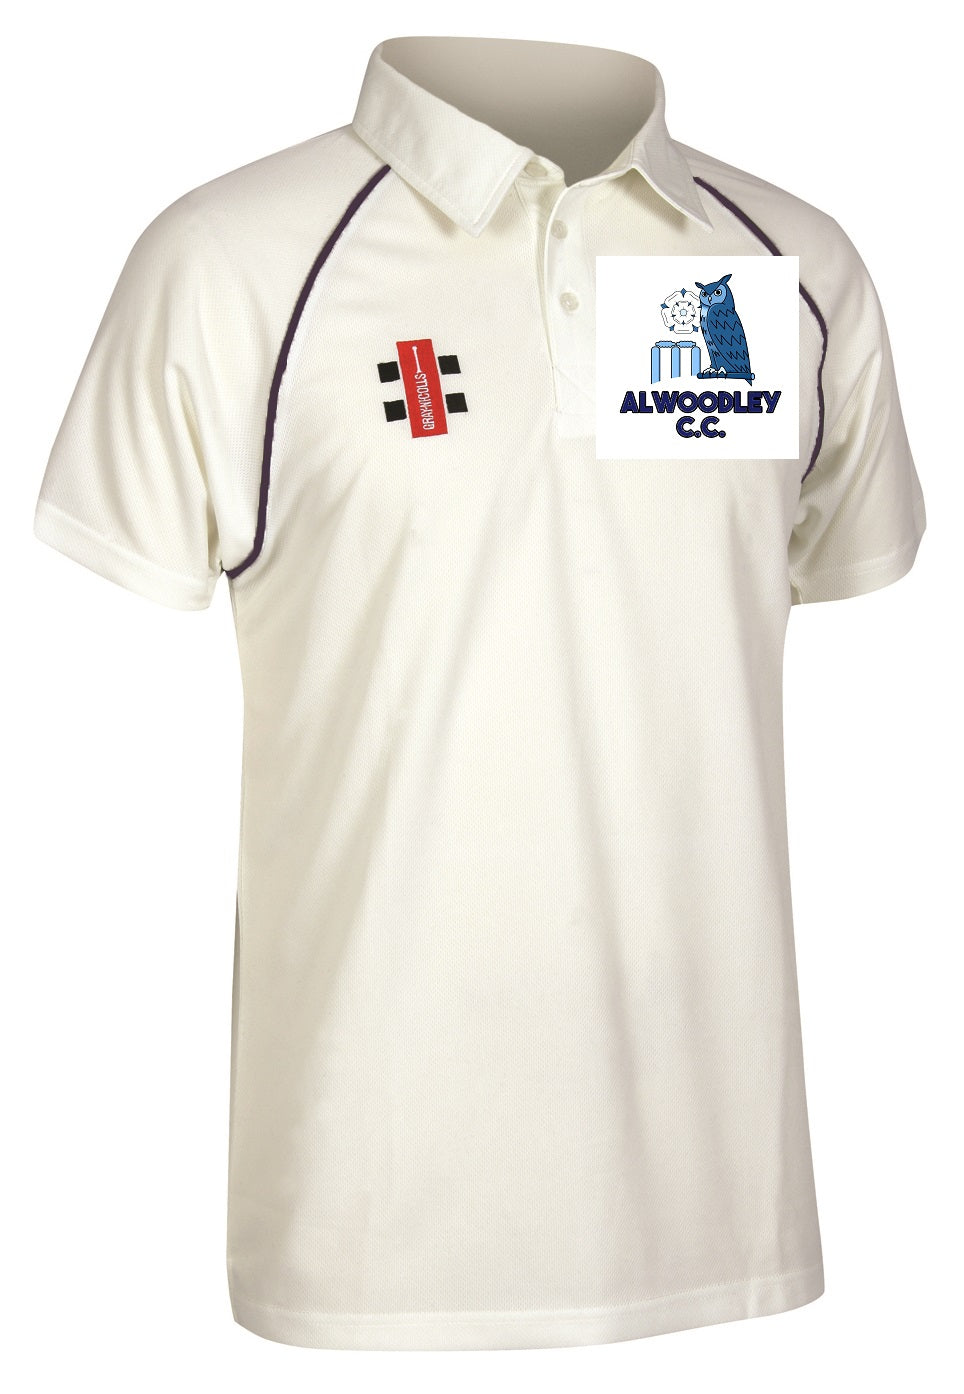 Junior Alwoodley Shirt